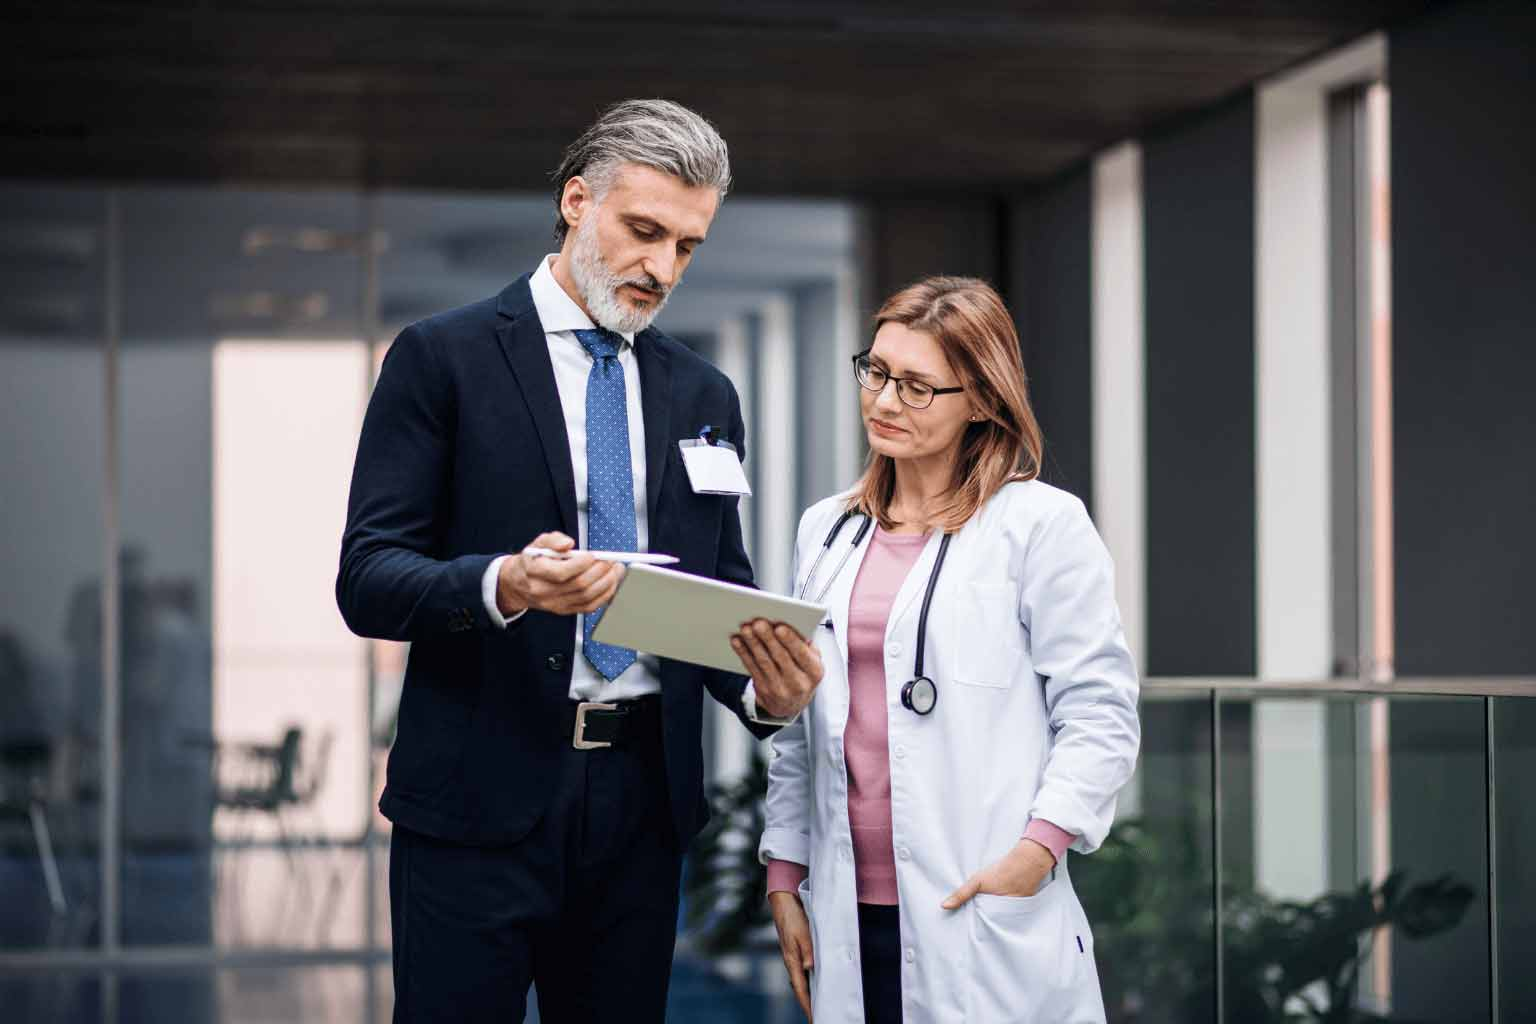 Female-doctor-shaking-hands-with-businessmanjpg